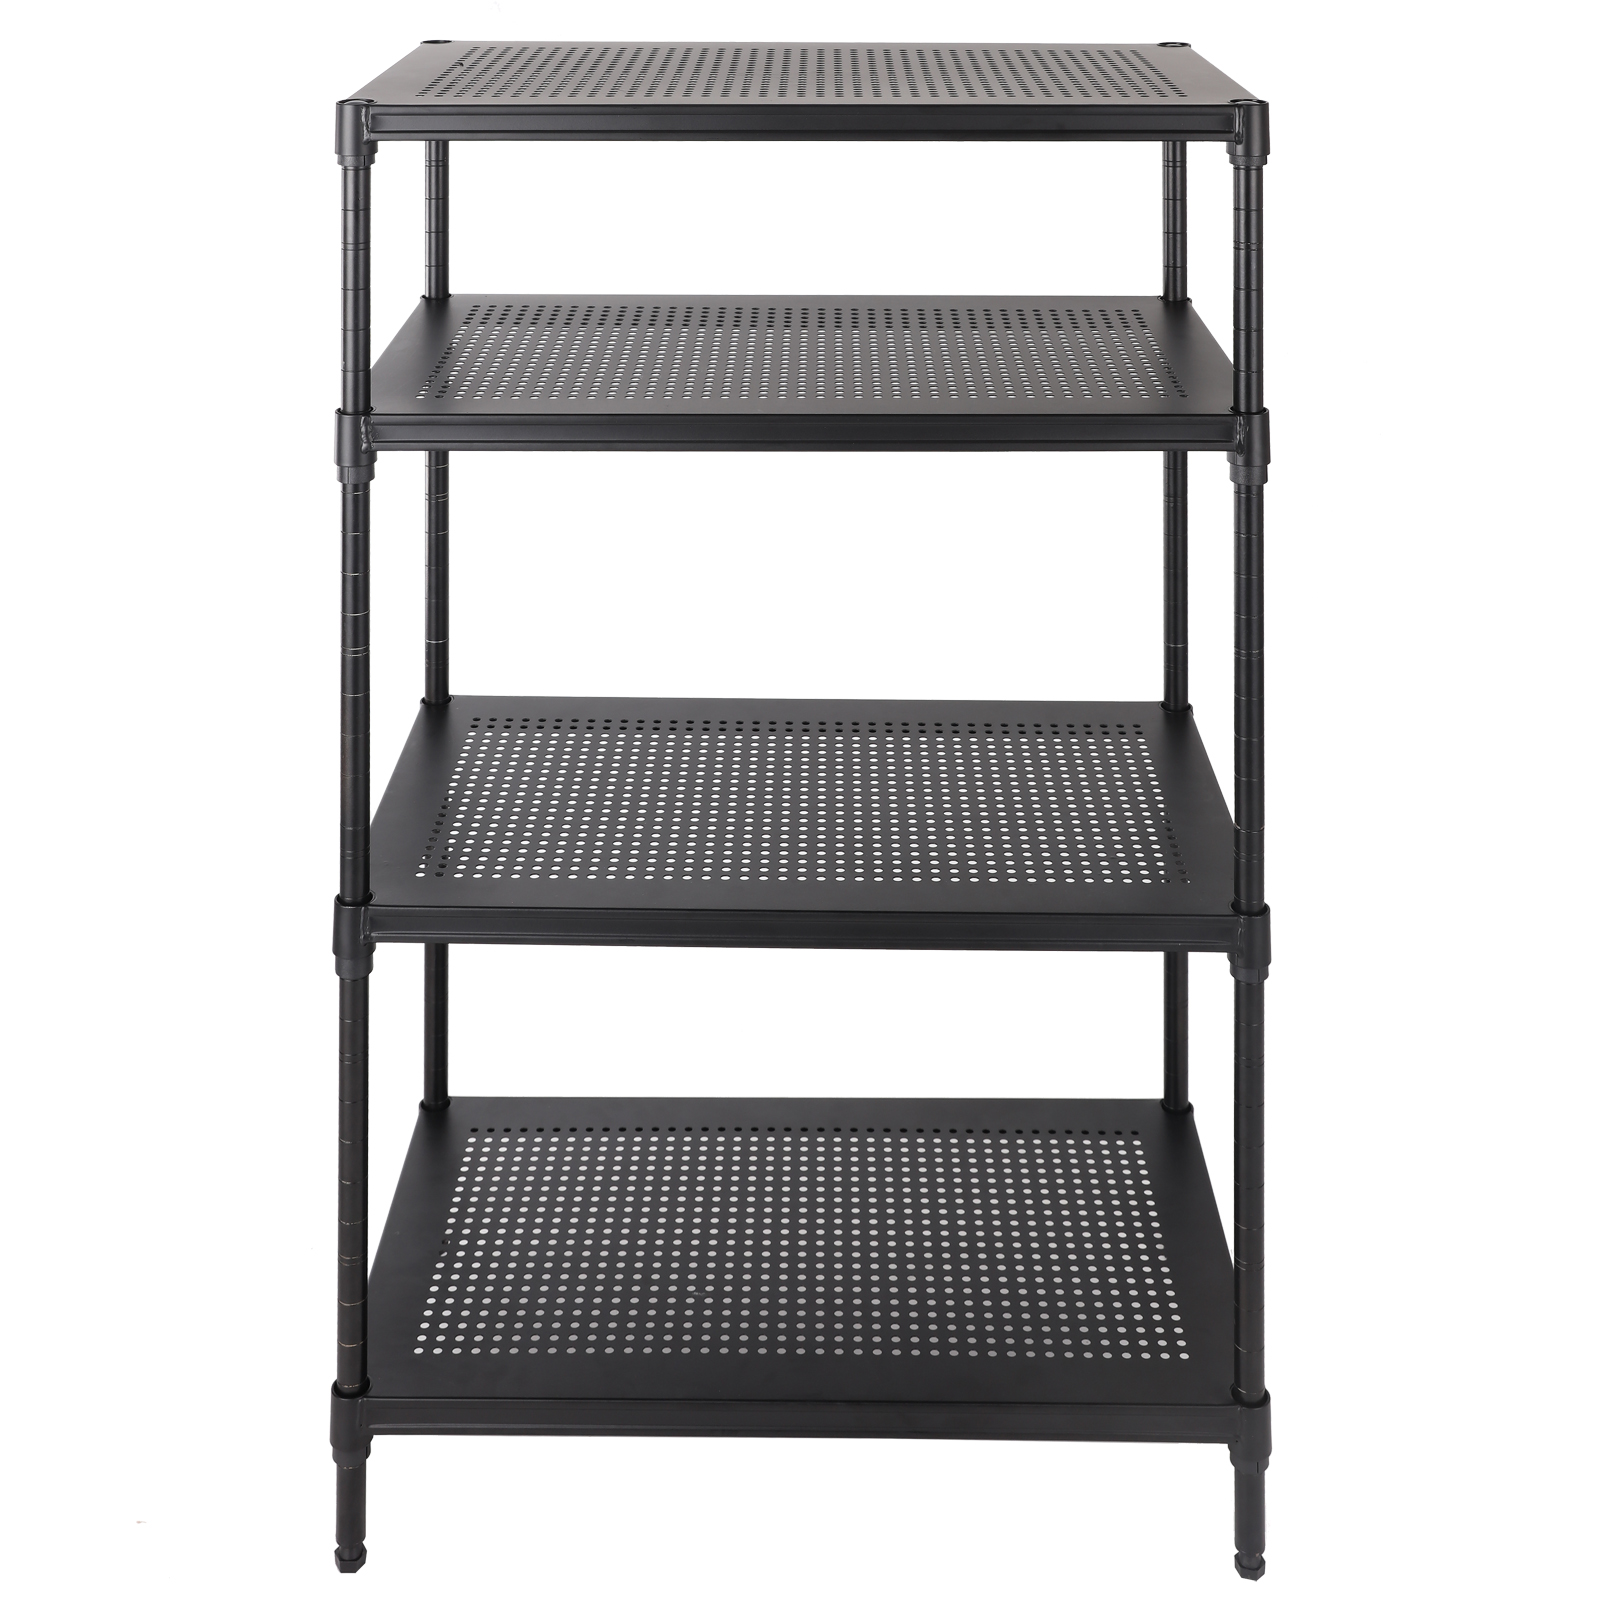 adjustable 4 tier heavy duty wire shelving rack unit steel. Black Bedroom Furniture Sets. Home Design Ideas